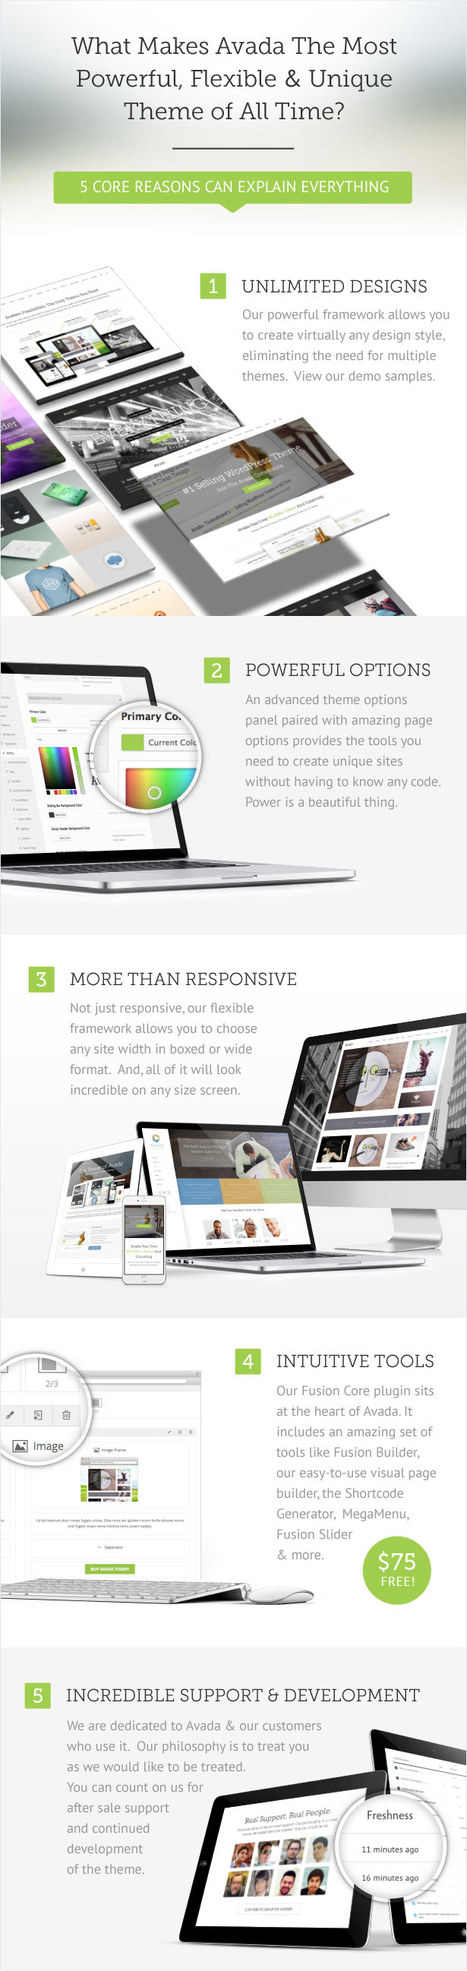 Avada Responsive Multipurpose WordPress Theme | Download Premium WordPress Themes | Scoop.it